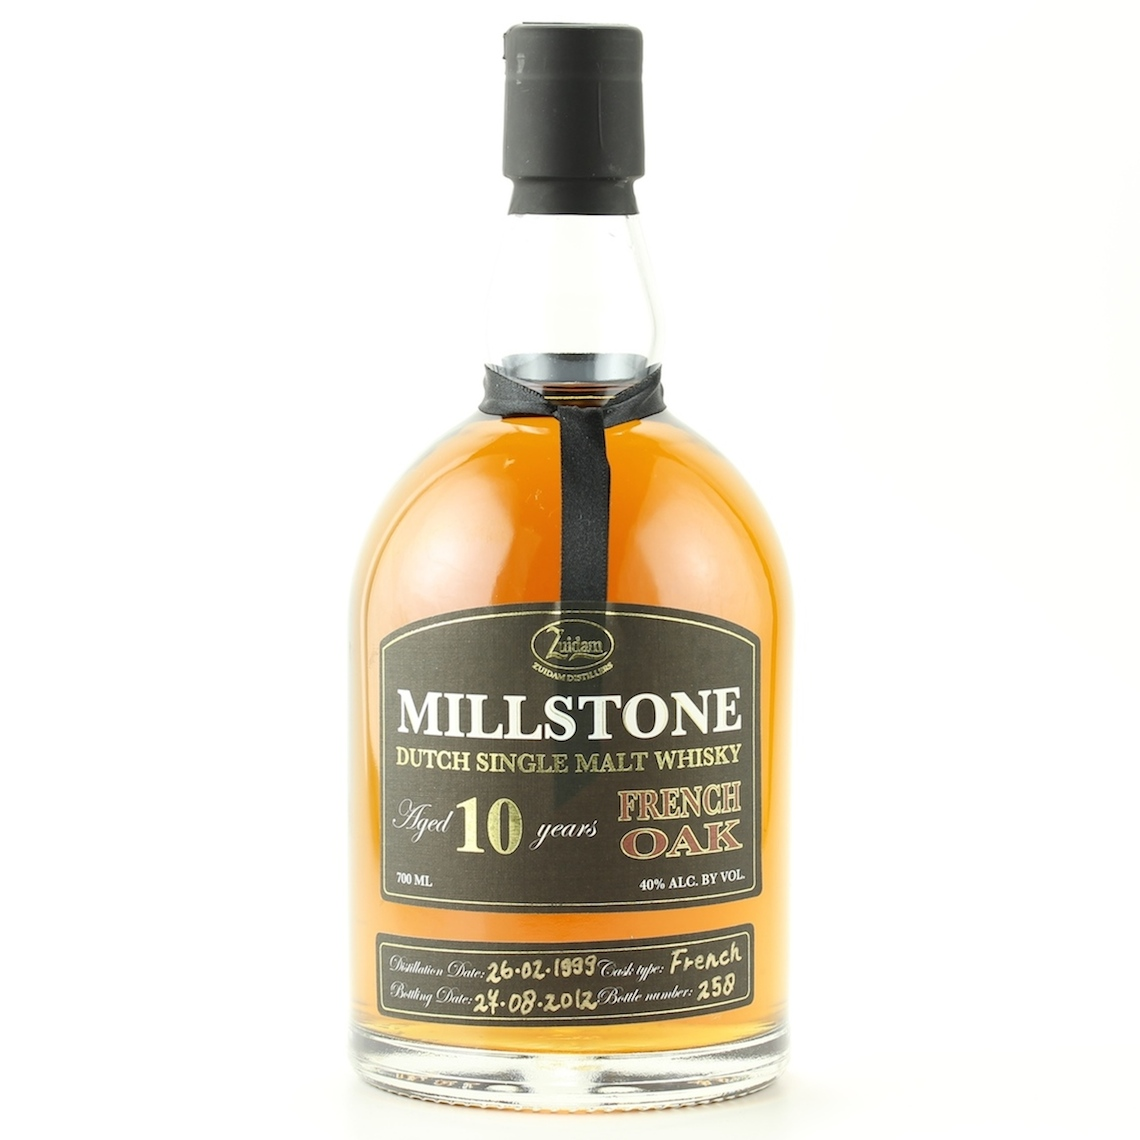 Zuidam Millstone Dutch Single Malt Whisky 10YO French Oak 40%